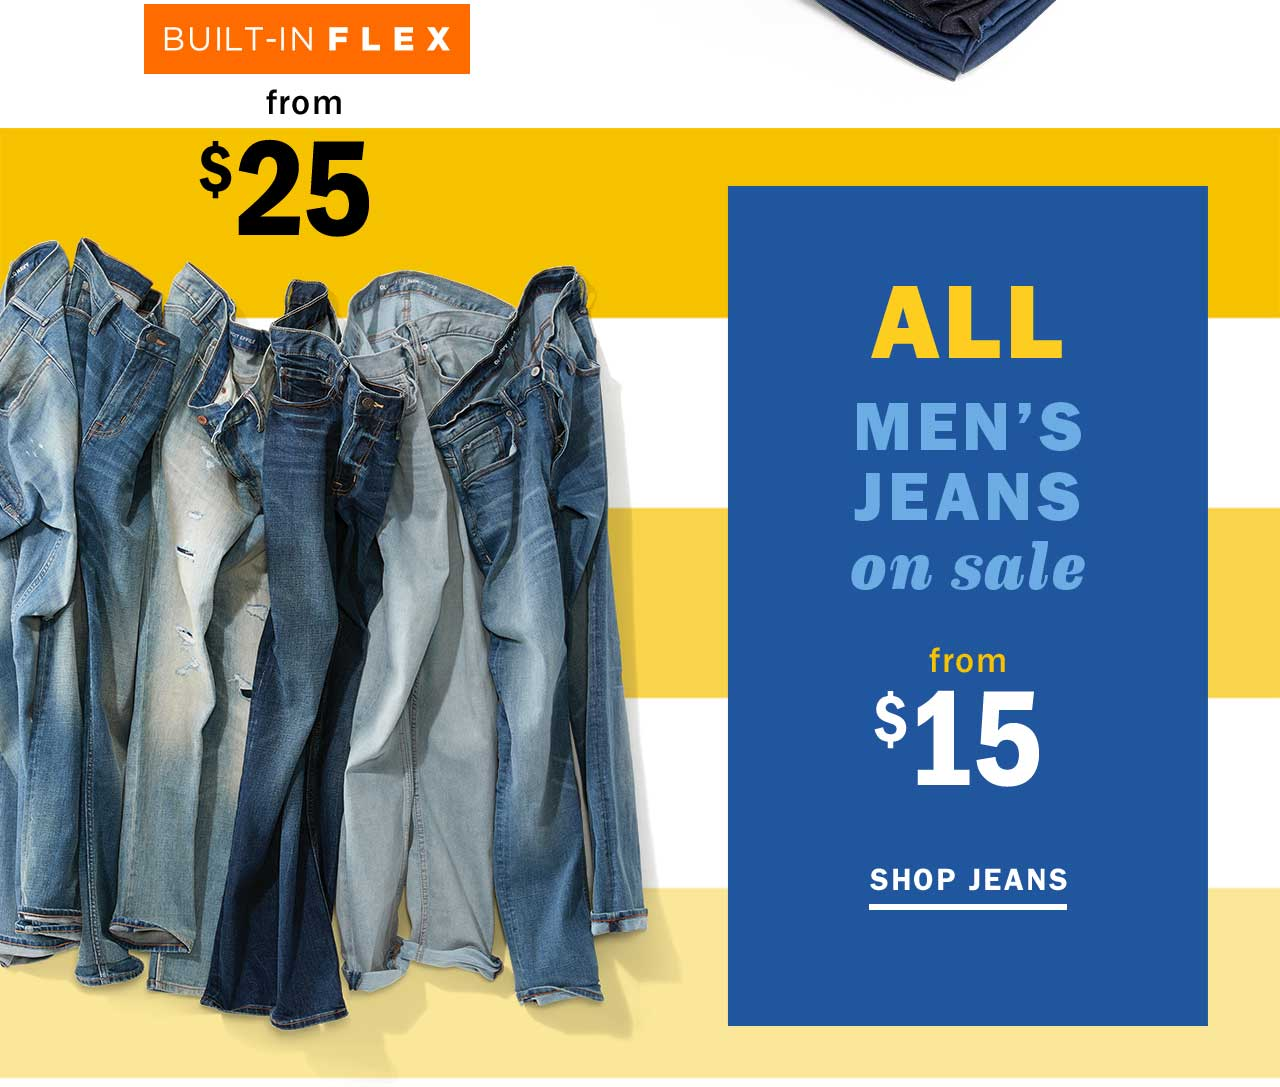 ALL MENS JEANS on sale from $15 | SHOP JEANS